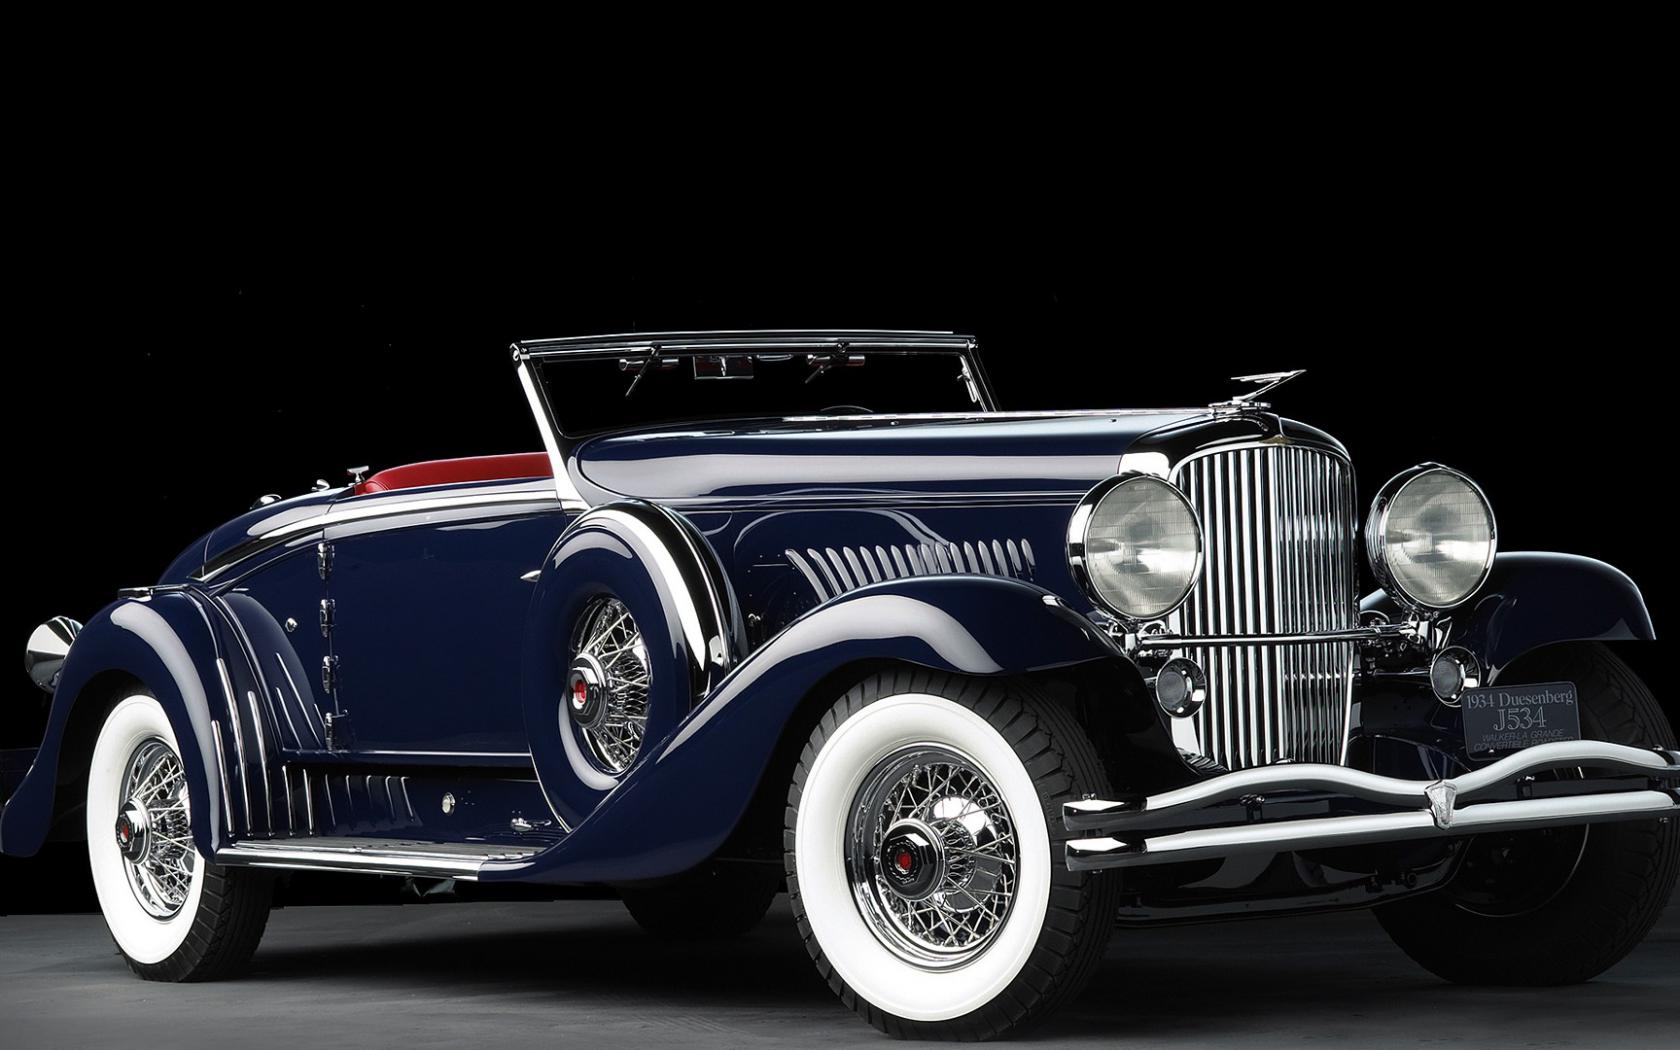 Wallpapers HD Cool Classic Antique vintage New Car Wallpapers 1680x1050